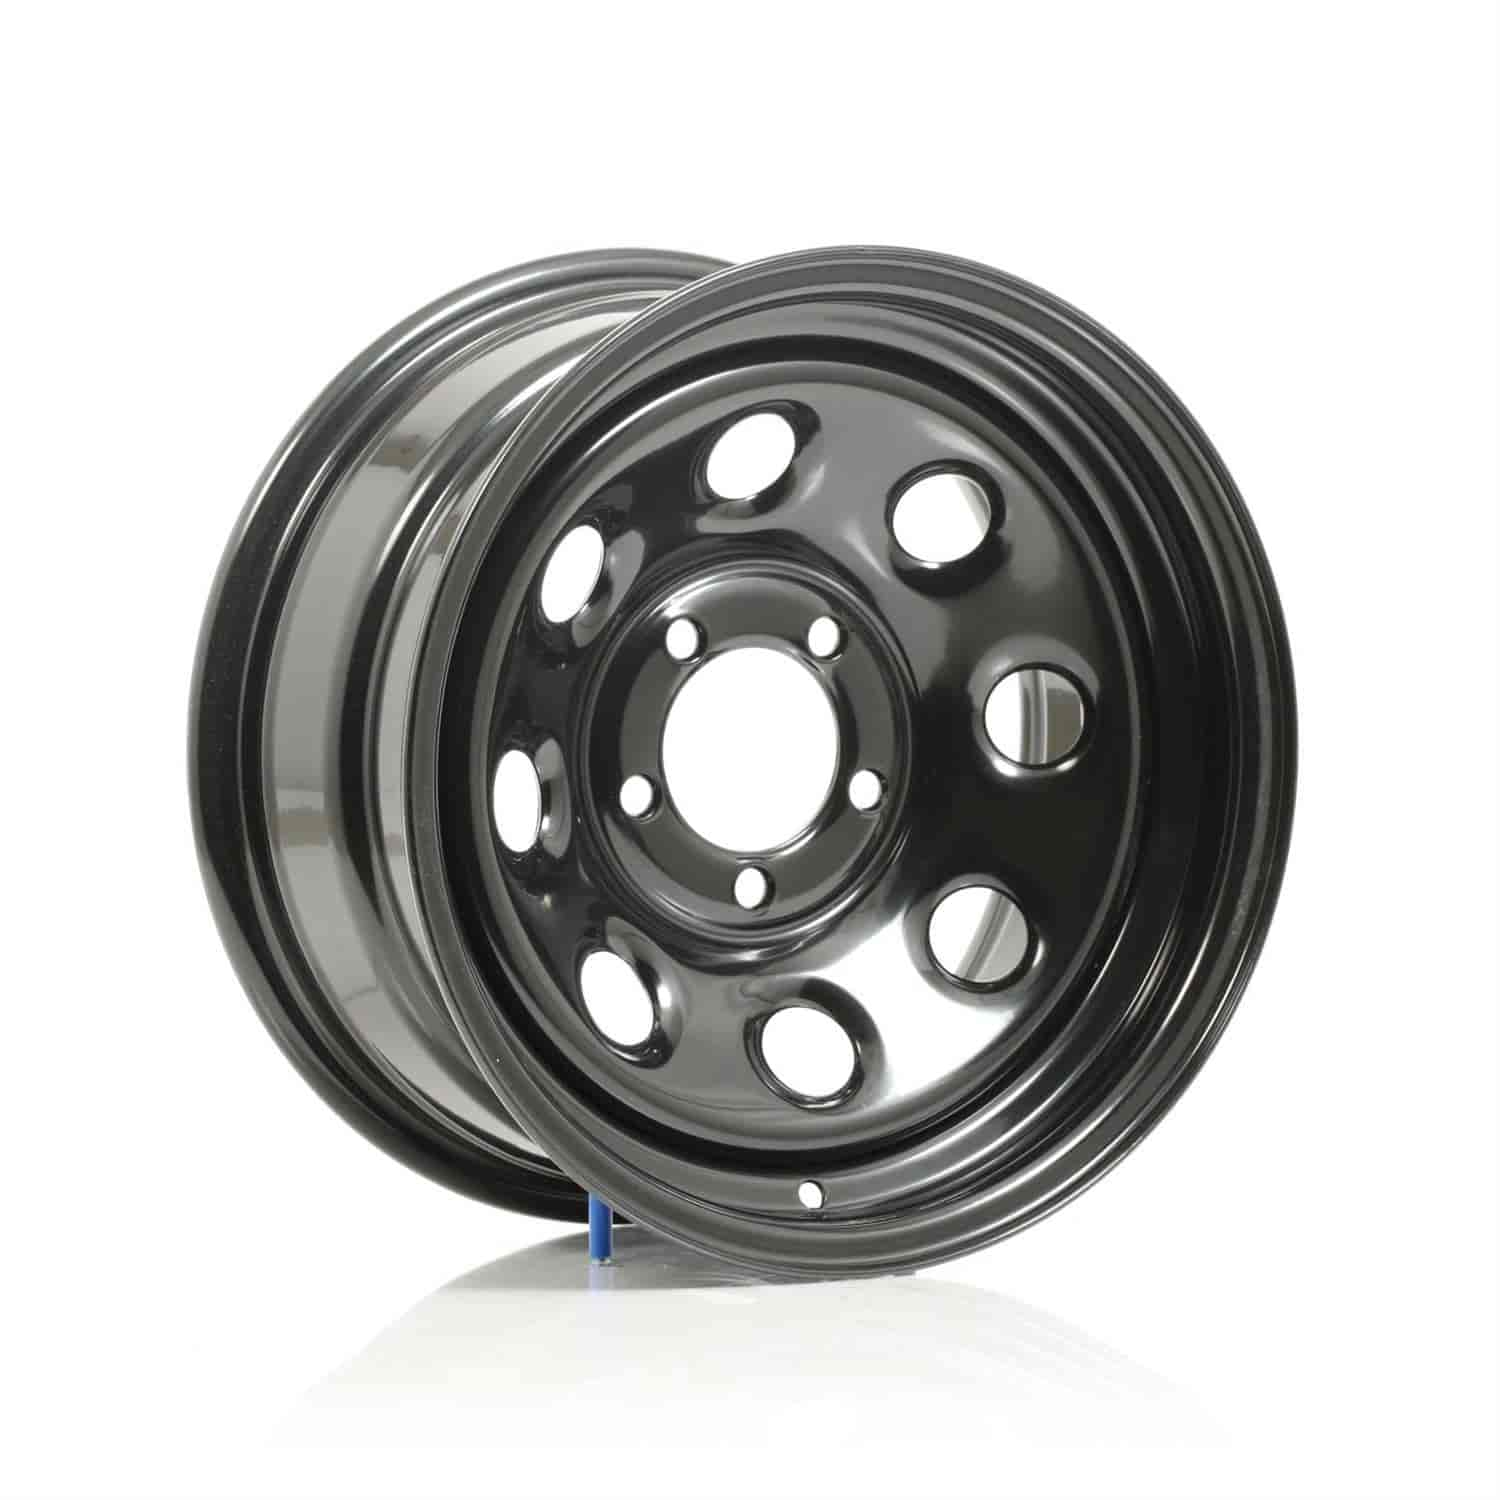 Cragar 3975734 - Cragar Black Soft 8 Wheels